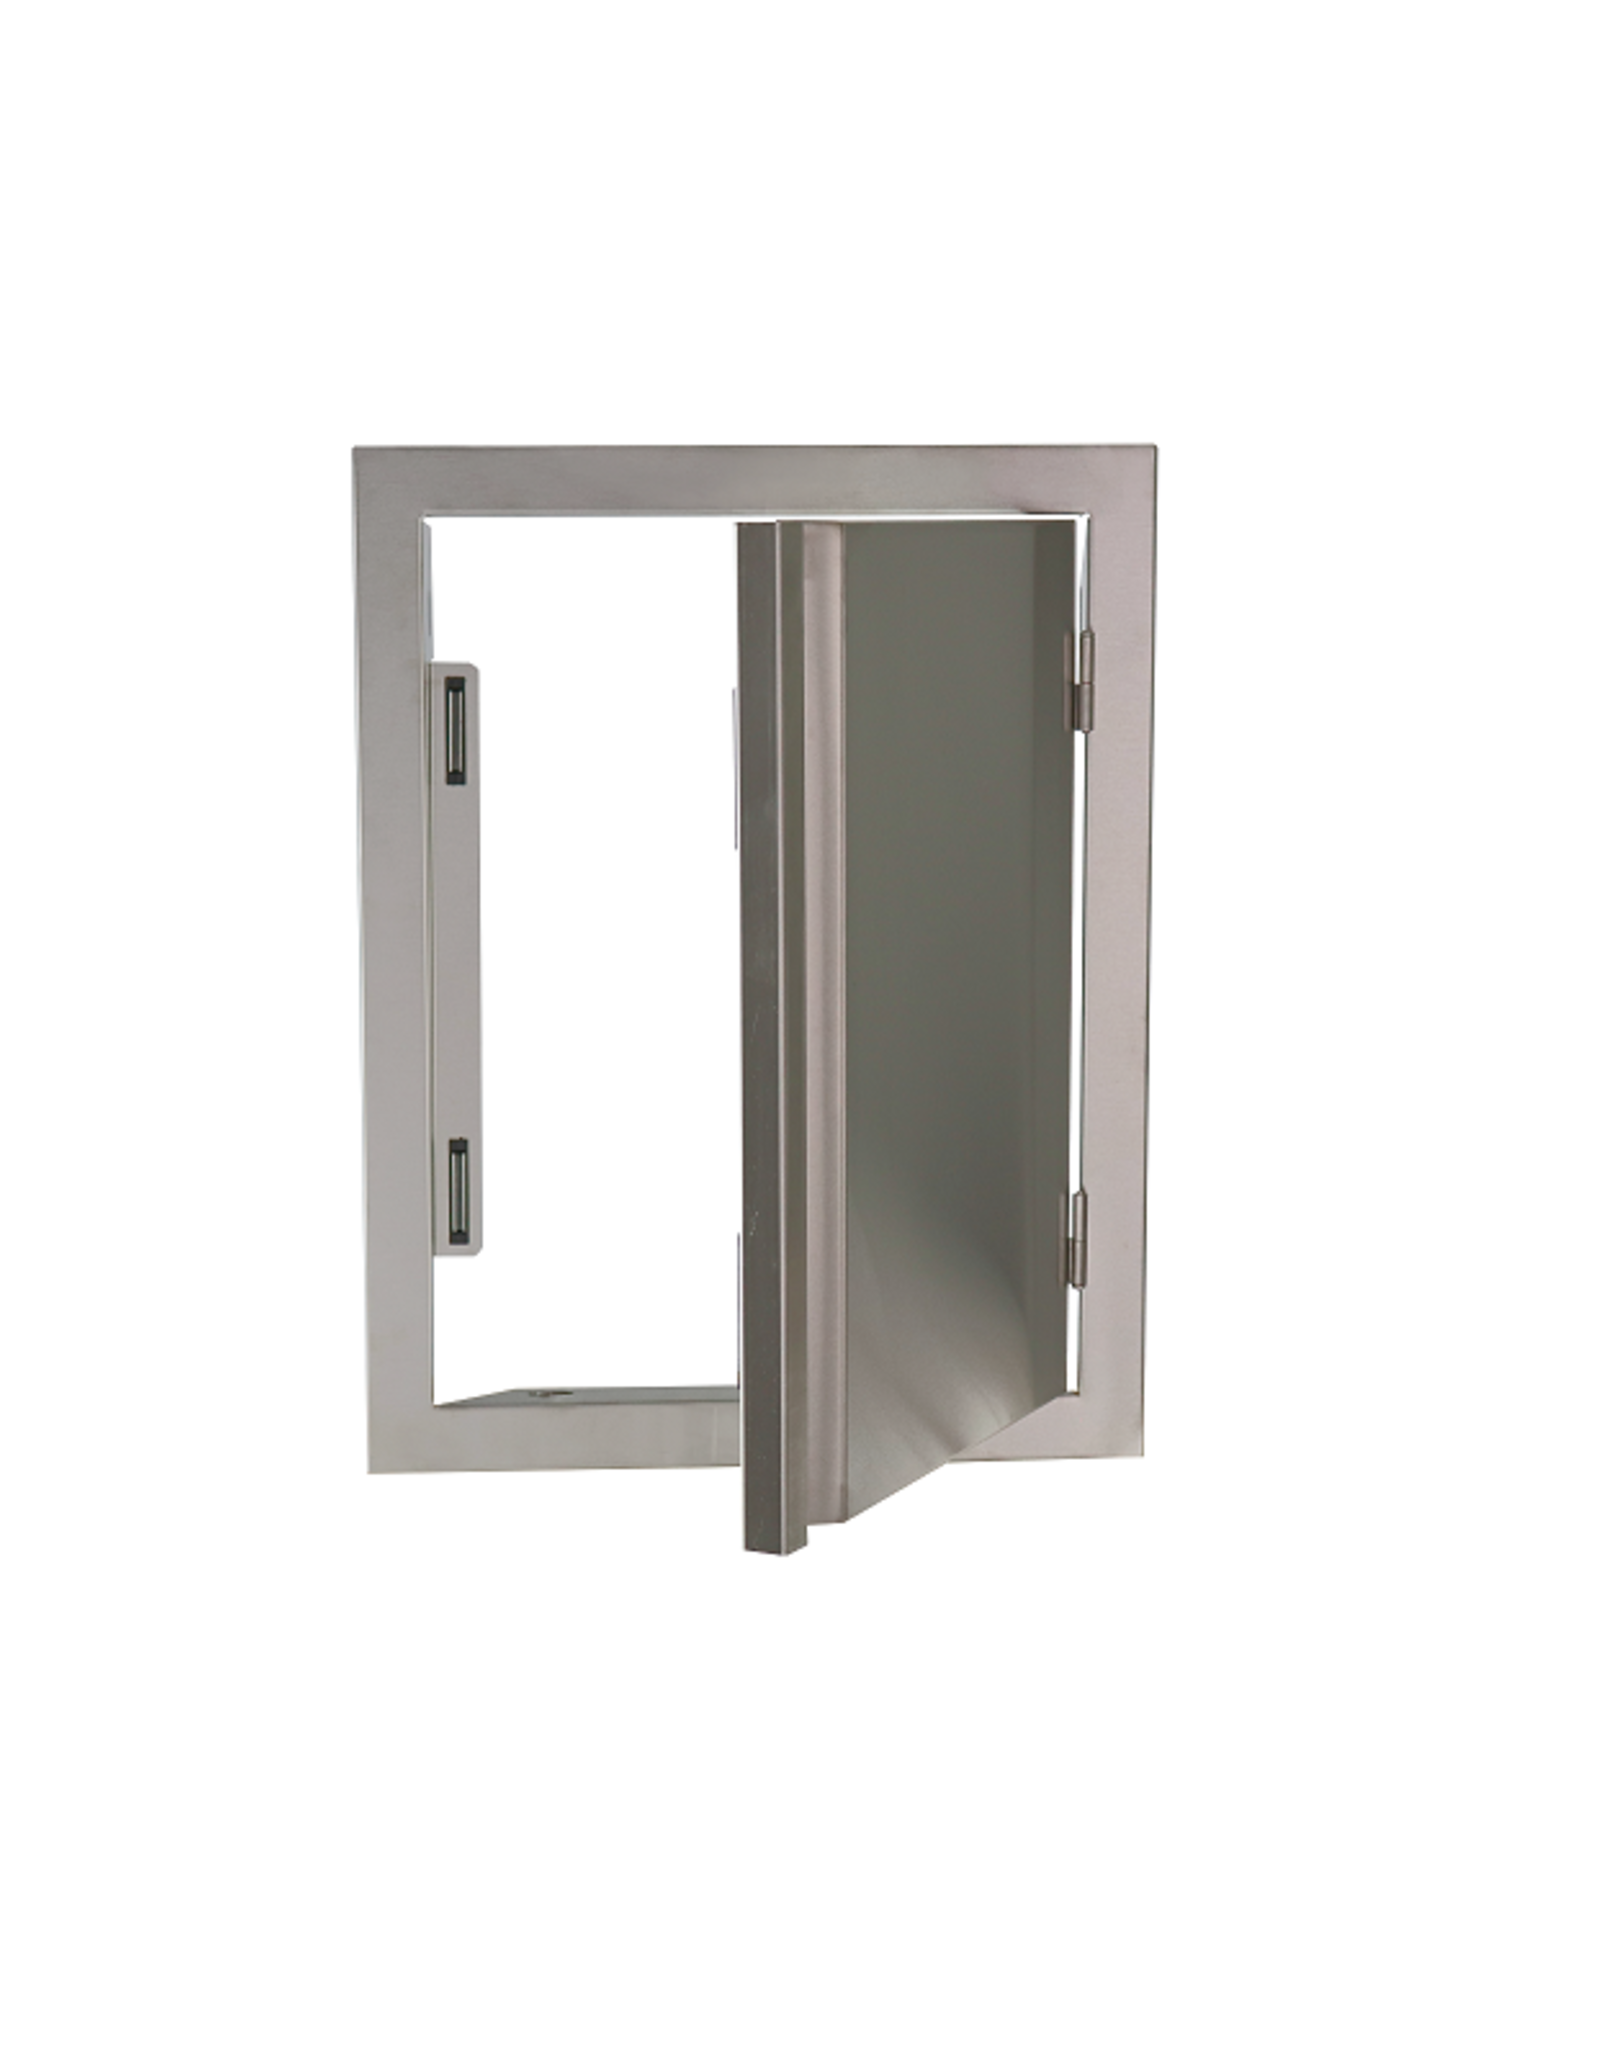 Renaissance Cooking Systems Renaissance Cooking Systems The Valiant Series Large Vertical Door - VDV2